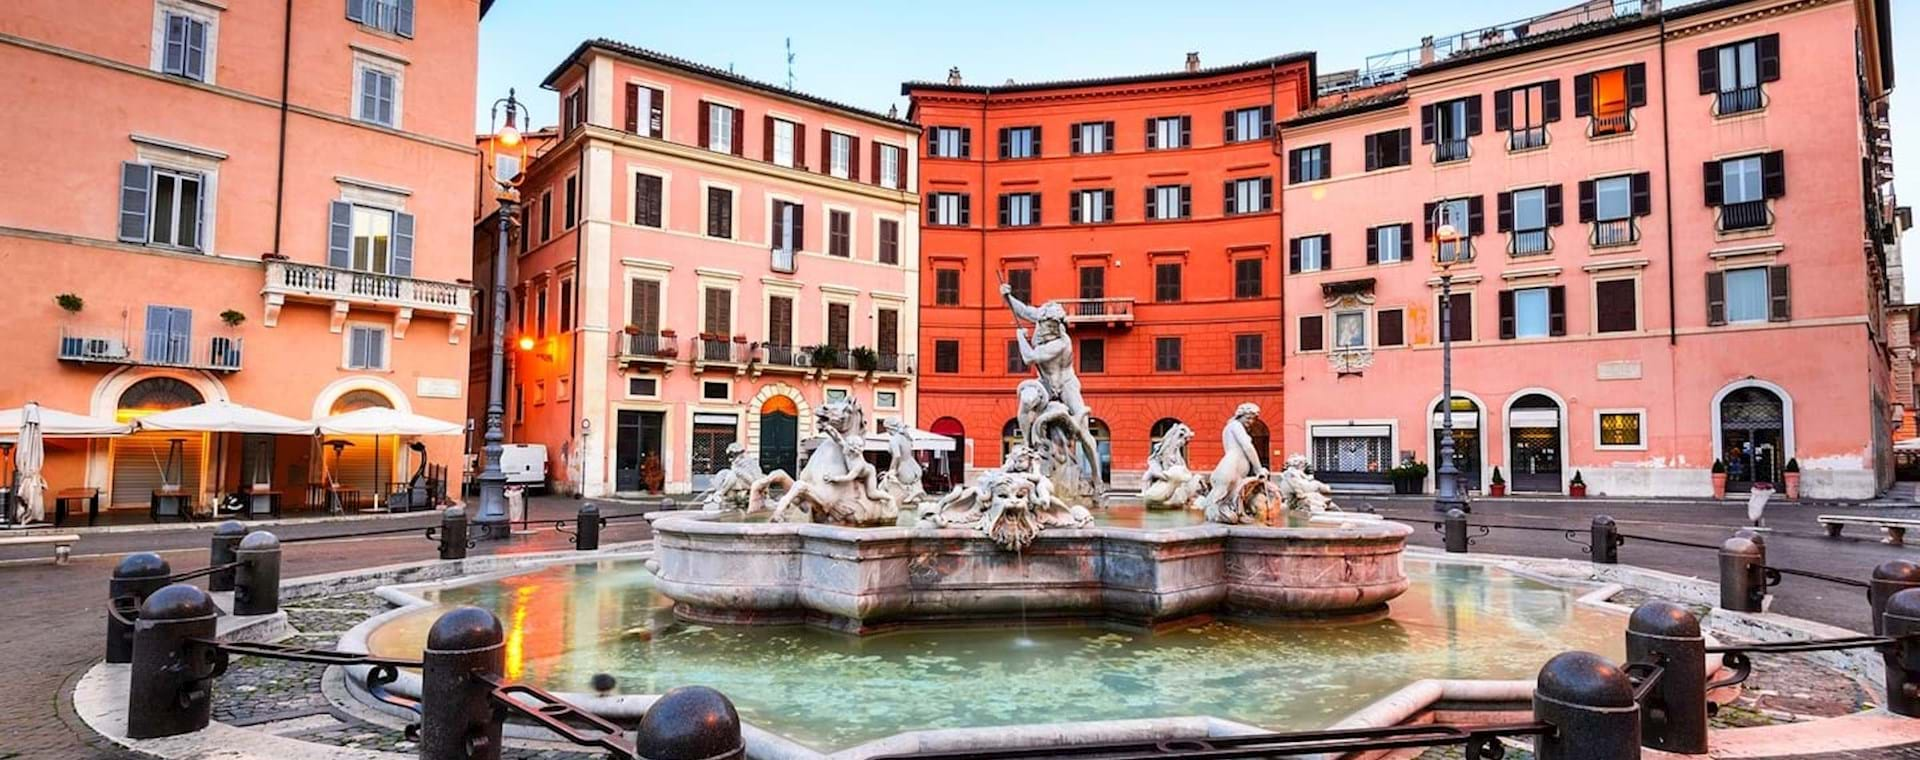 Best of Rome Walking Tour with Spanish Steps, Trevi Fountain & Pantheon